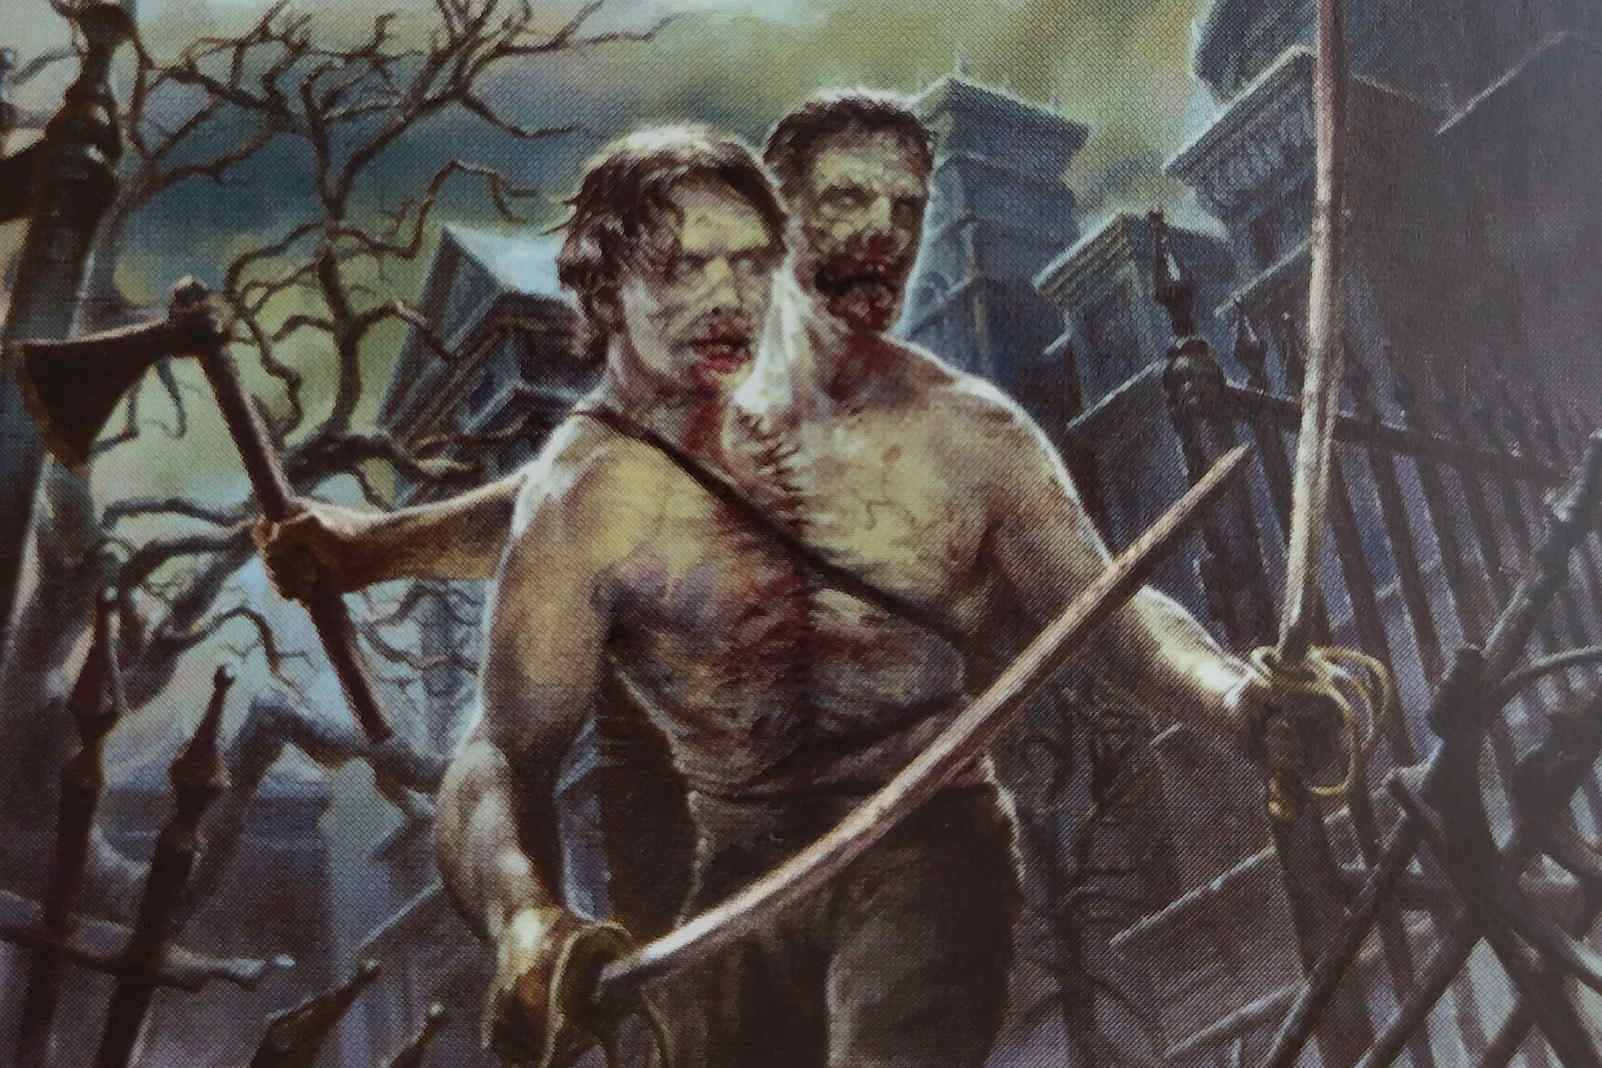 Two-Headed Zombie MTG card with Menace strike. Image: Wizards of the Coast. Artist: Josh Hass.